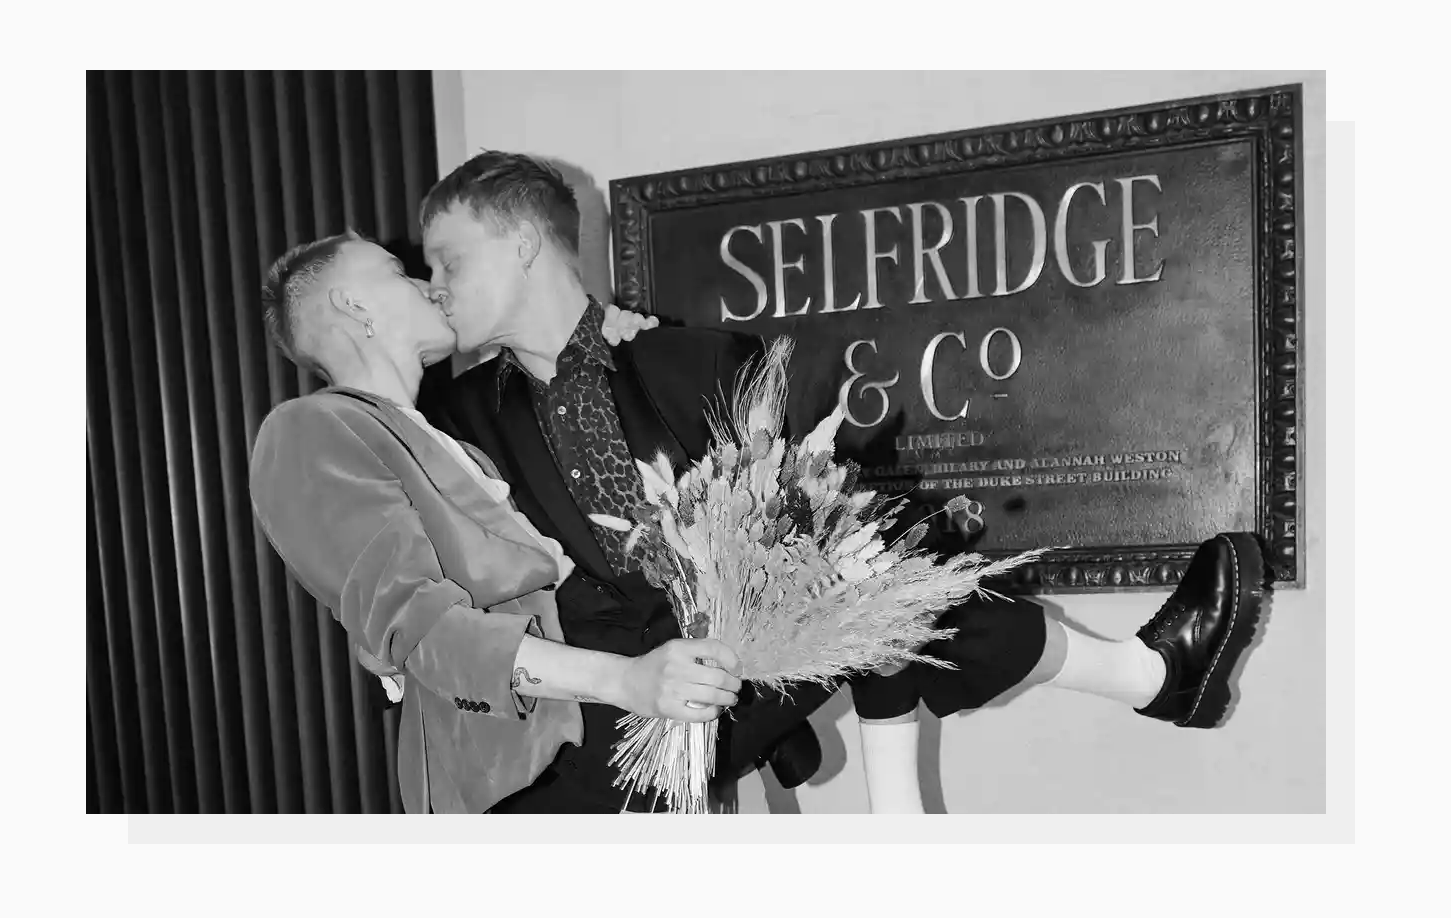 A photo of a happy couple kissing in the Selfridge store